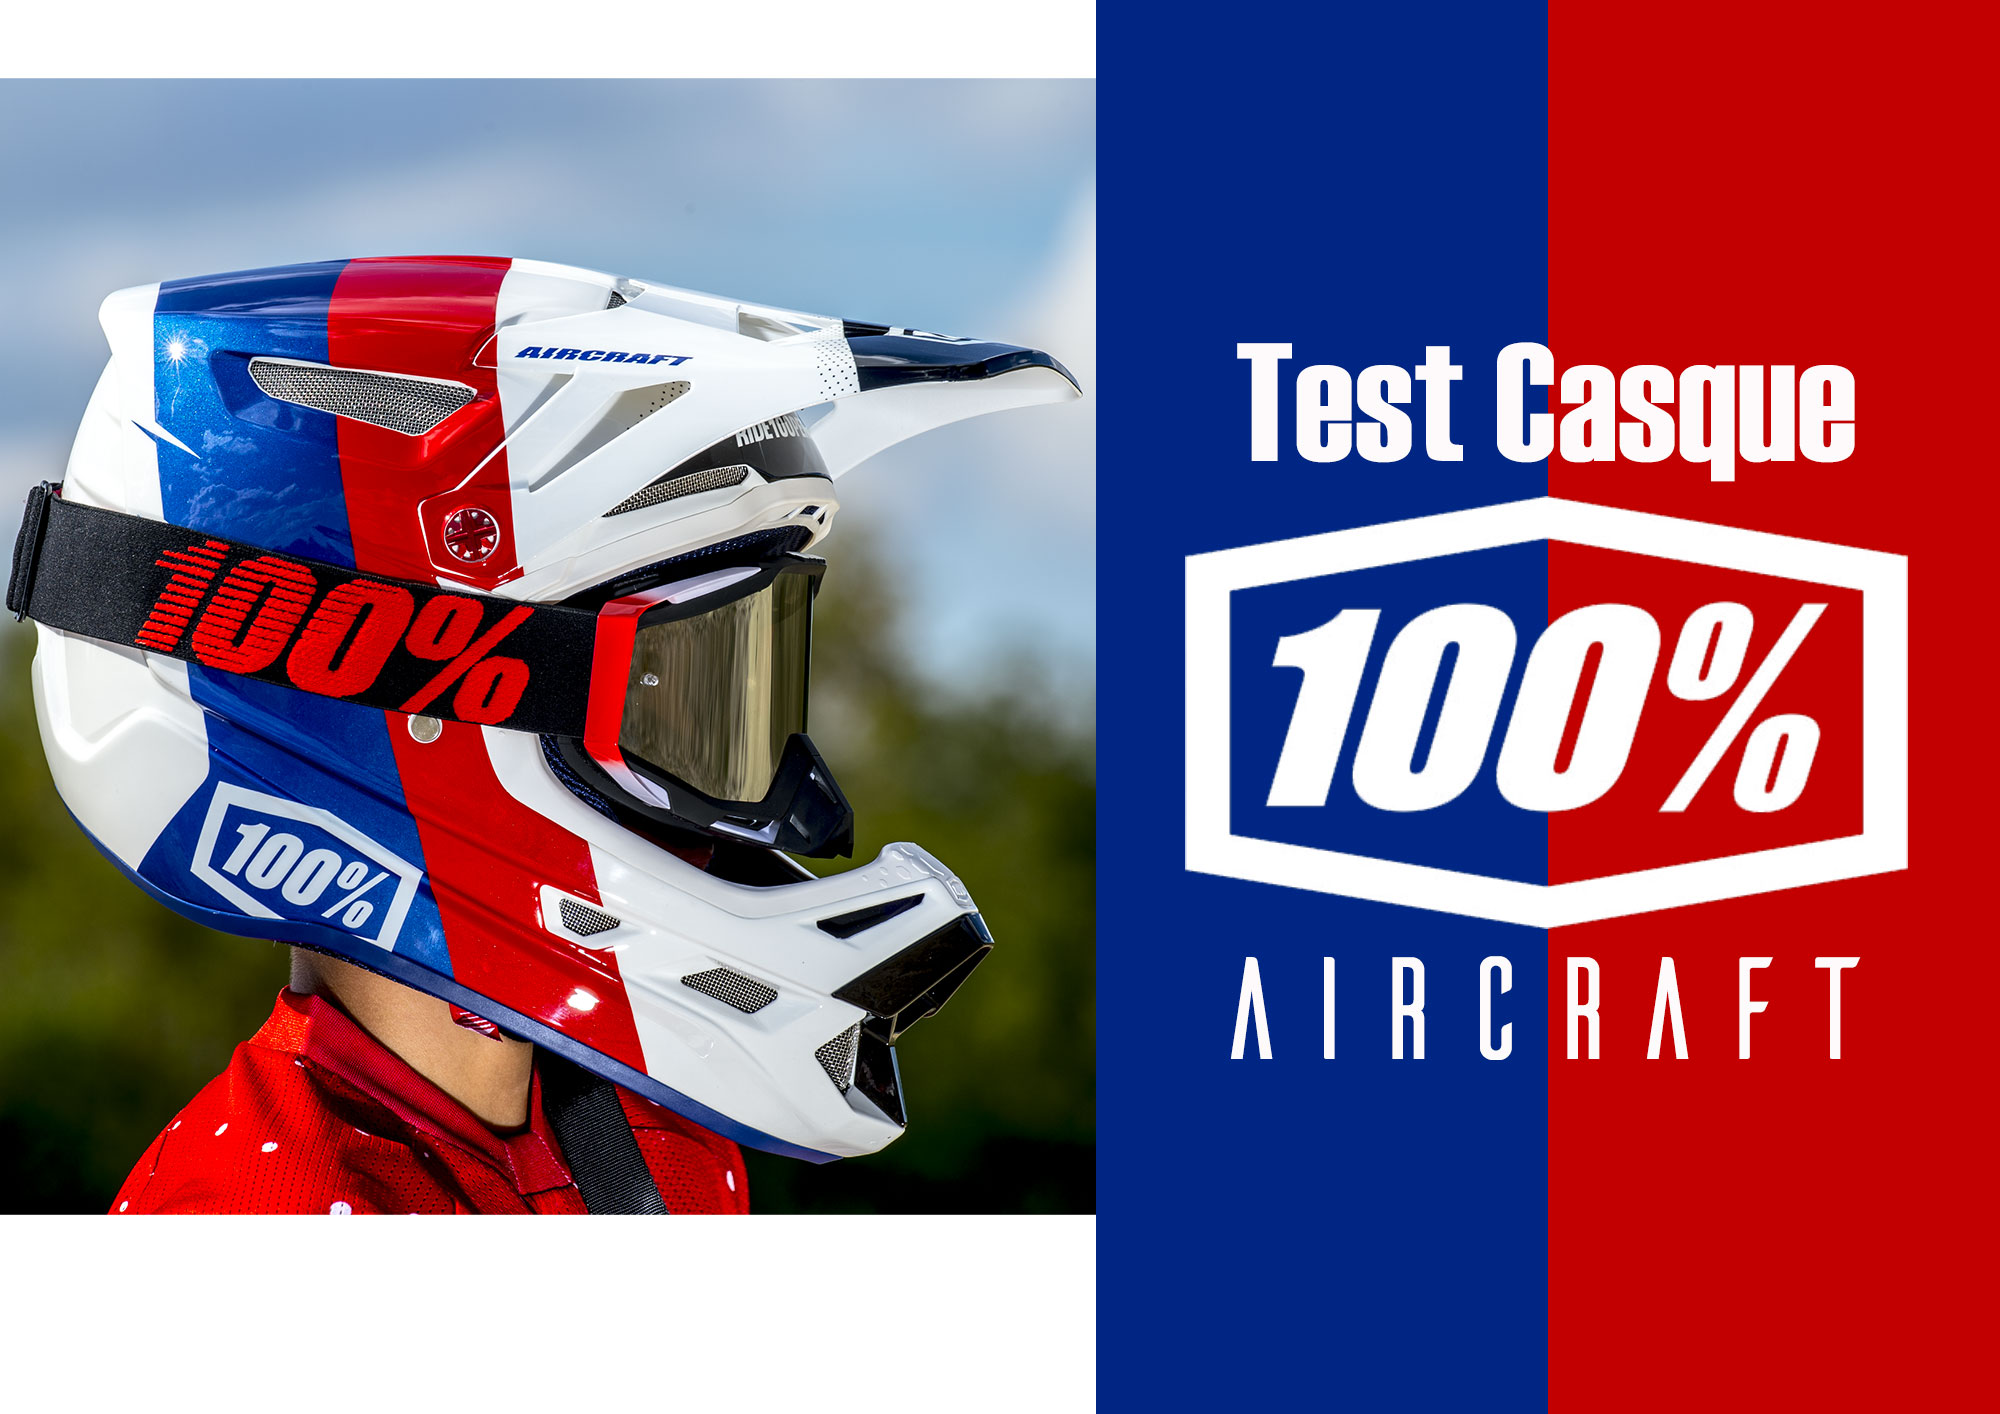 Test casque 100% AIRCRAFT